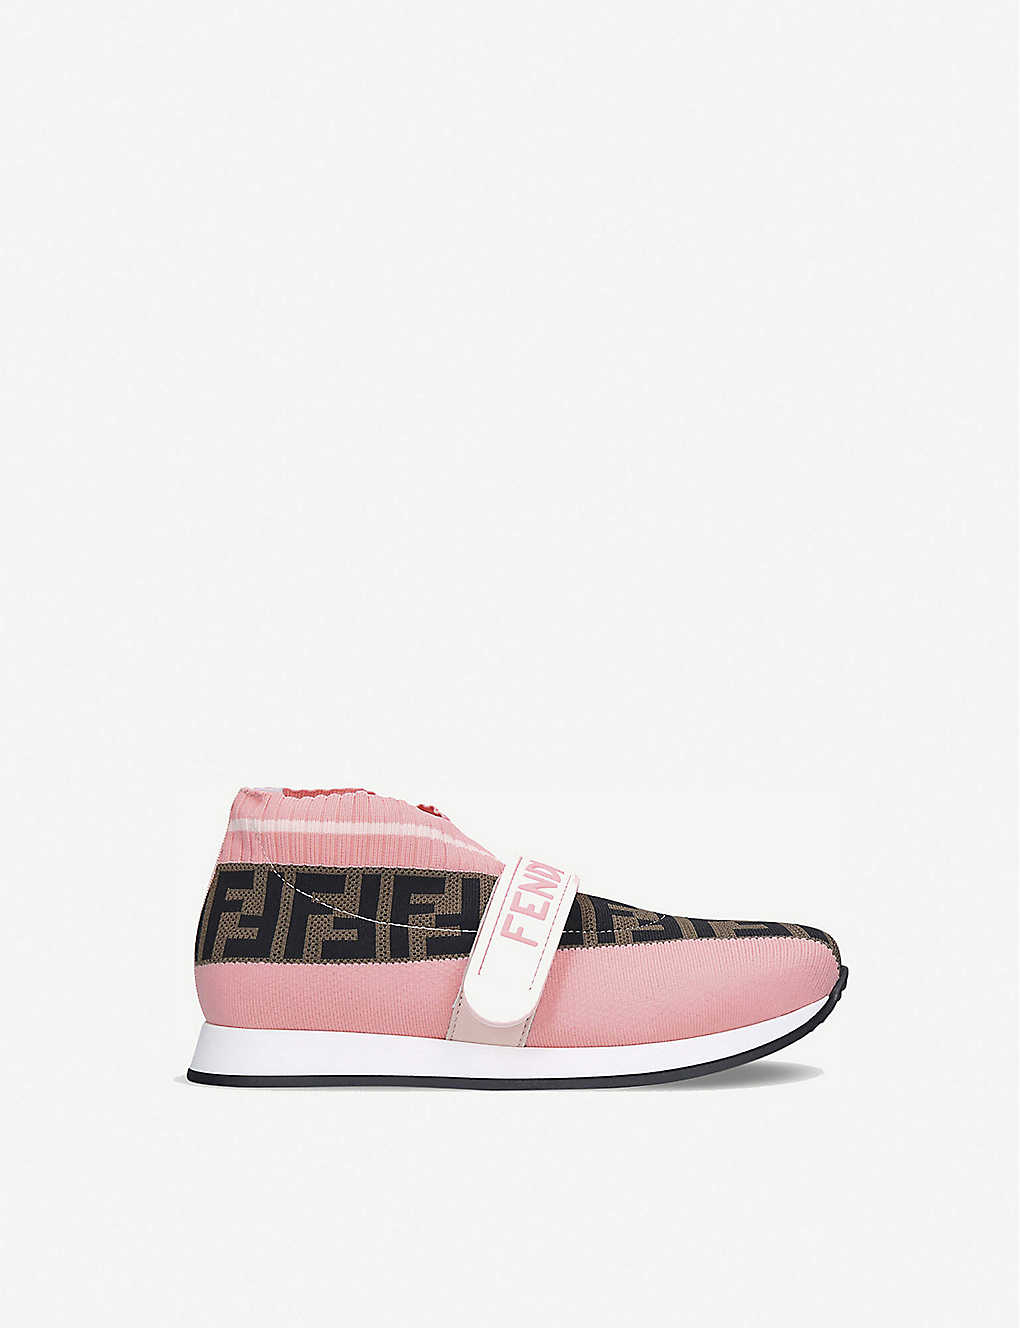 FENDI: Love Low pull-on knitted trainers age 6-7 years